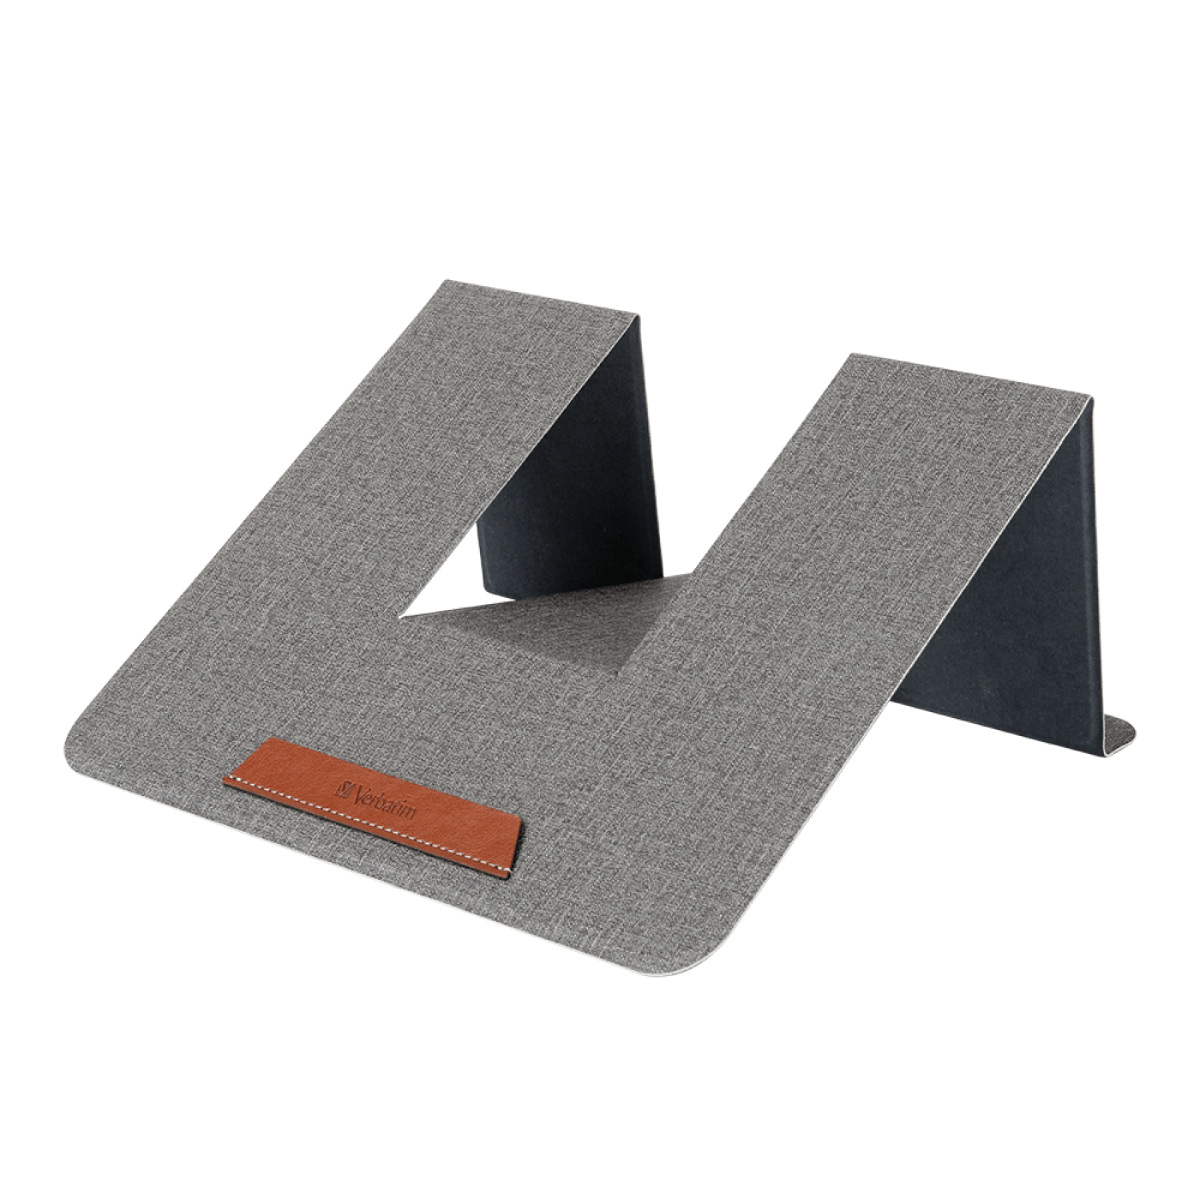 Verbatim Liftup Laptop Stand (Supports up to 10kg, Lift up to 105mm)